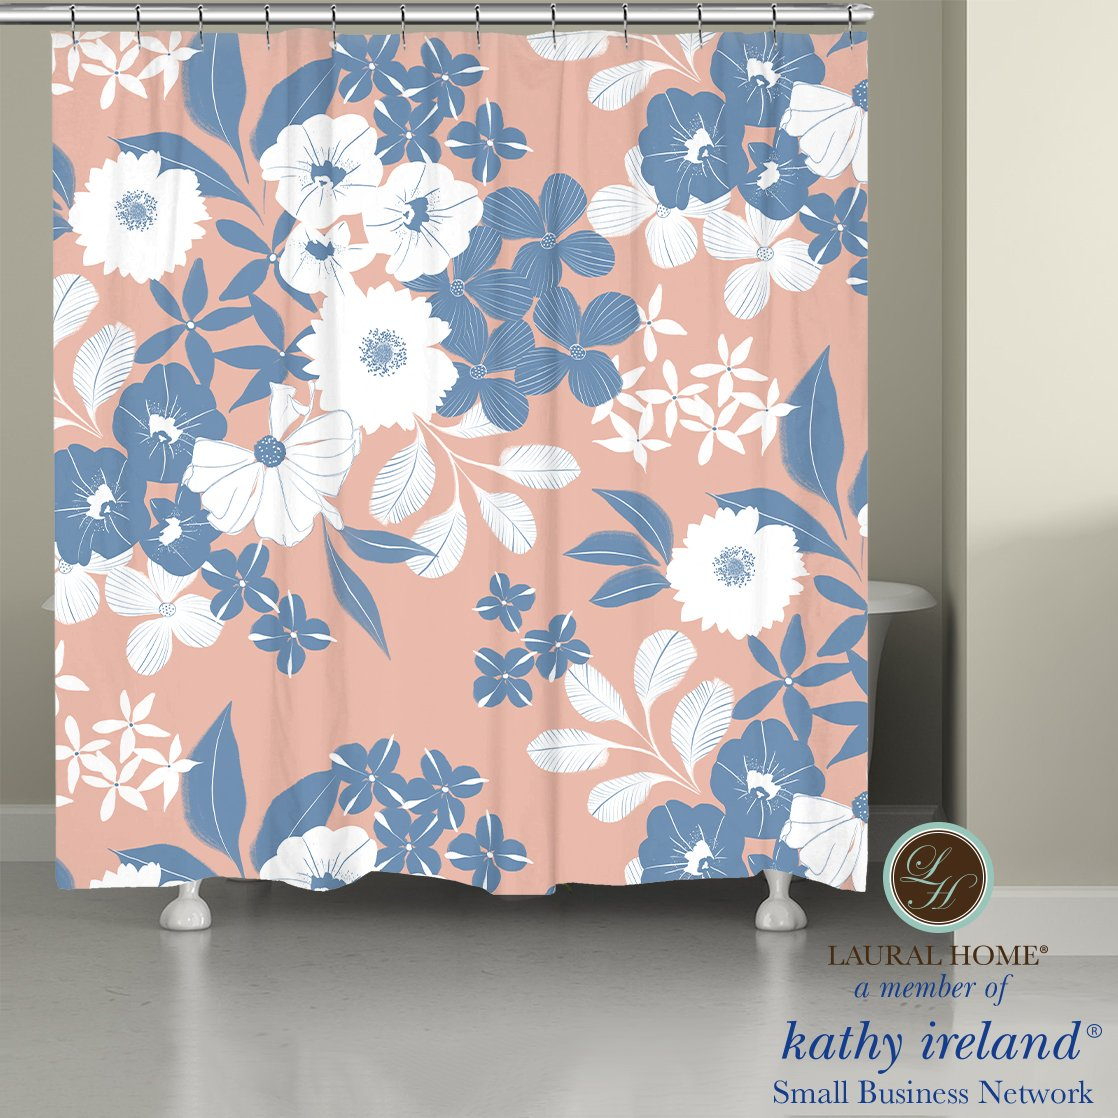 Laural Home kathy ireland® Small Business Network Member Delicate Floral Bursts Shower Curtain